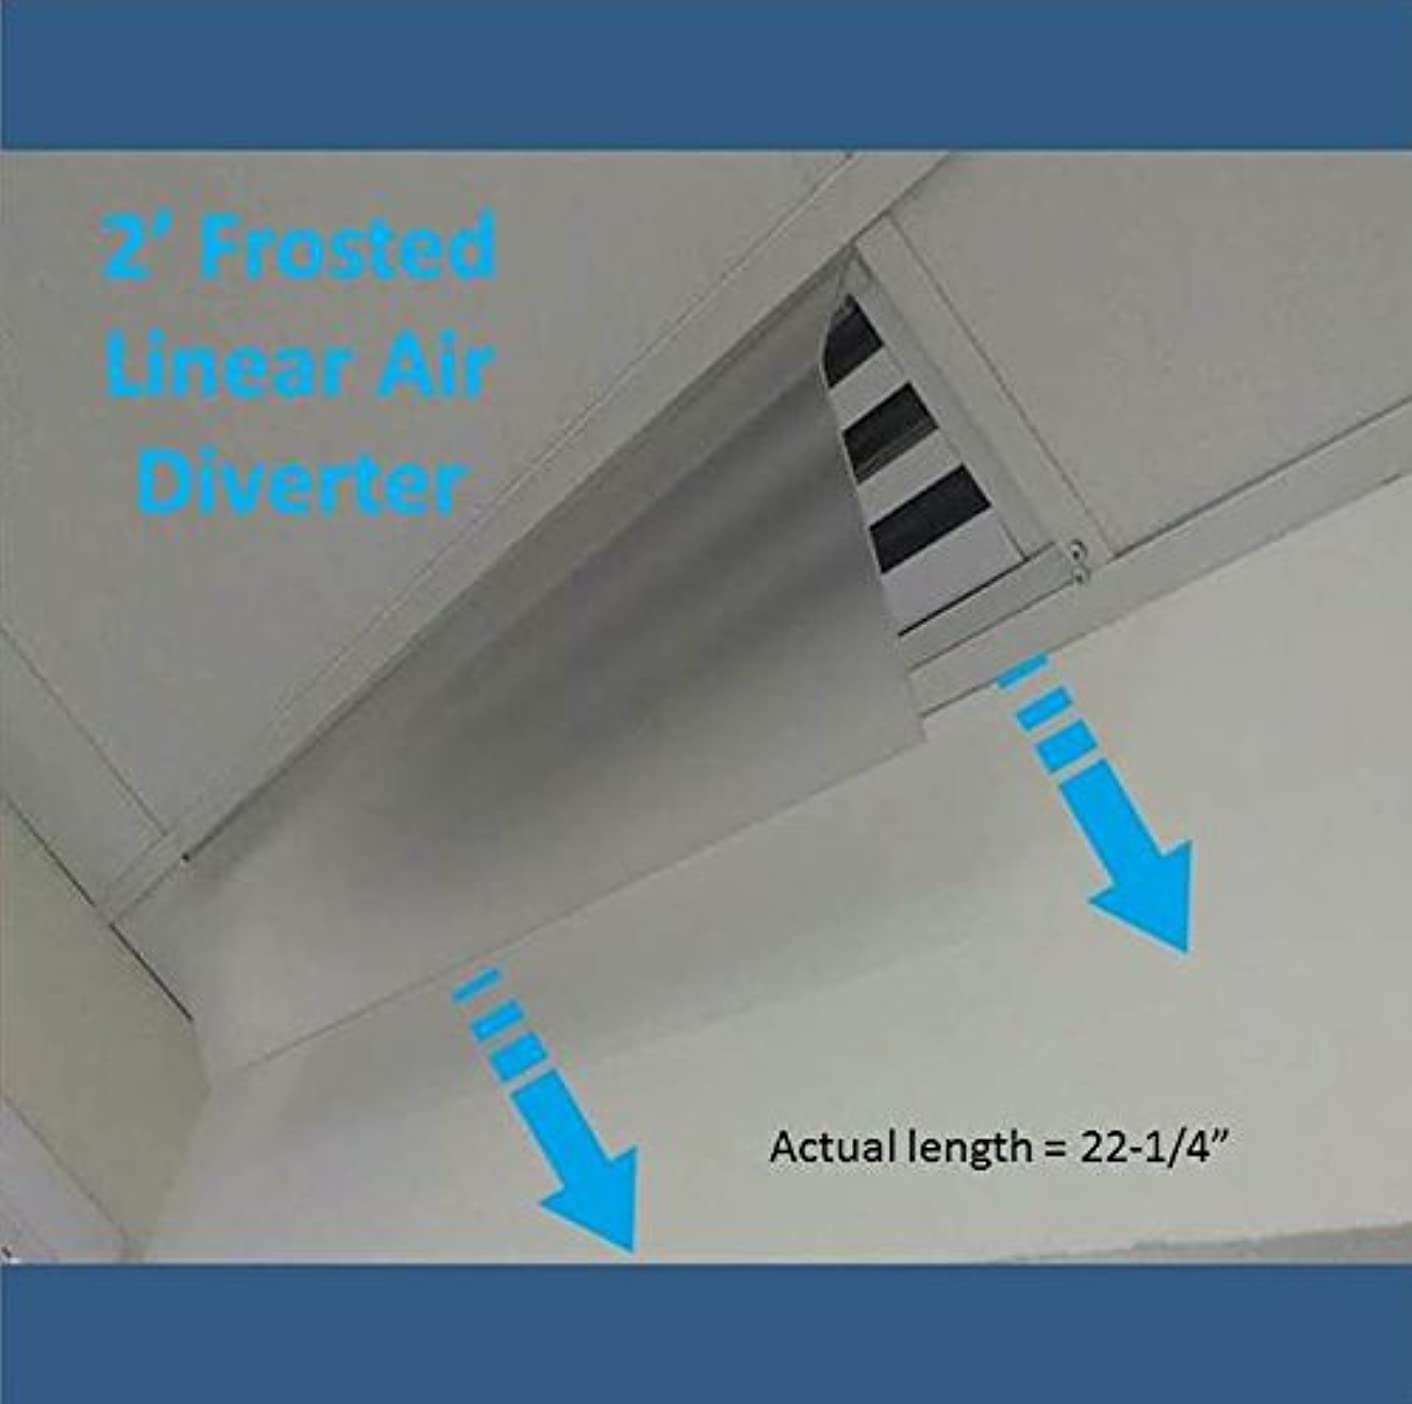 2' Long Frosted Linear Air Diverters (22-1/4